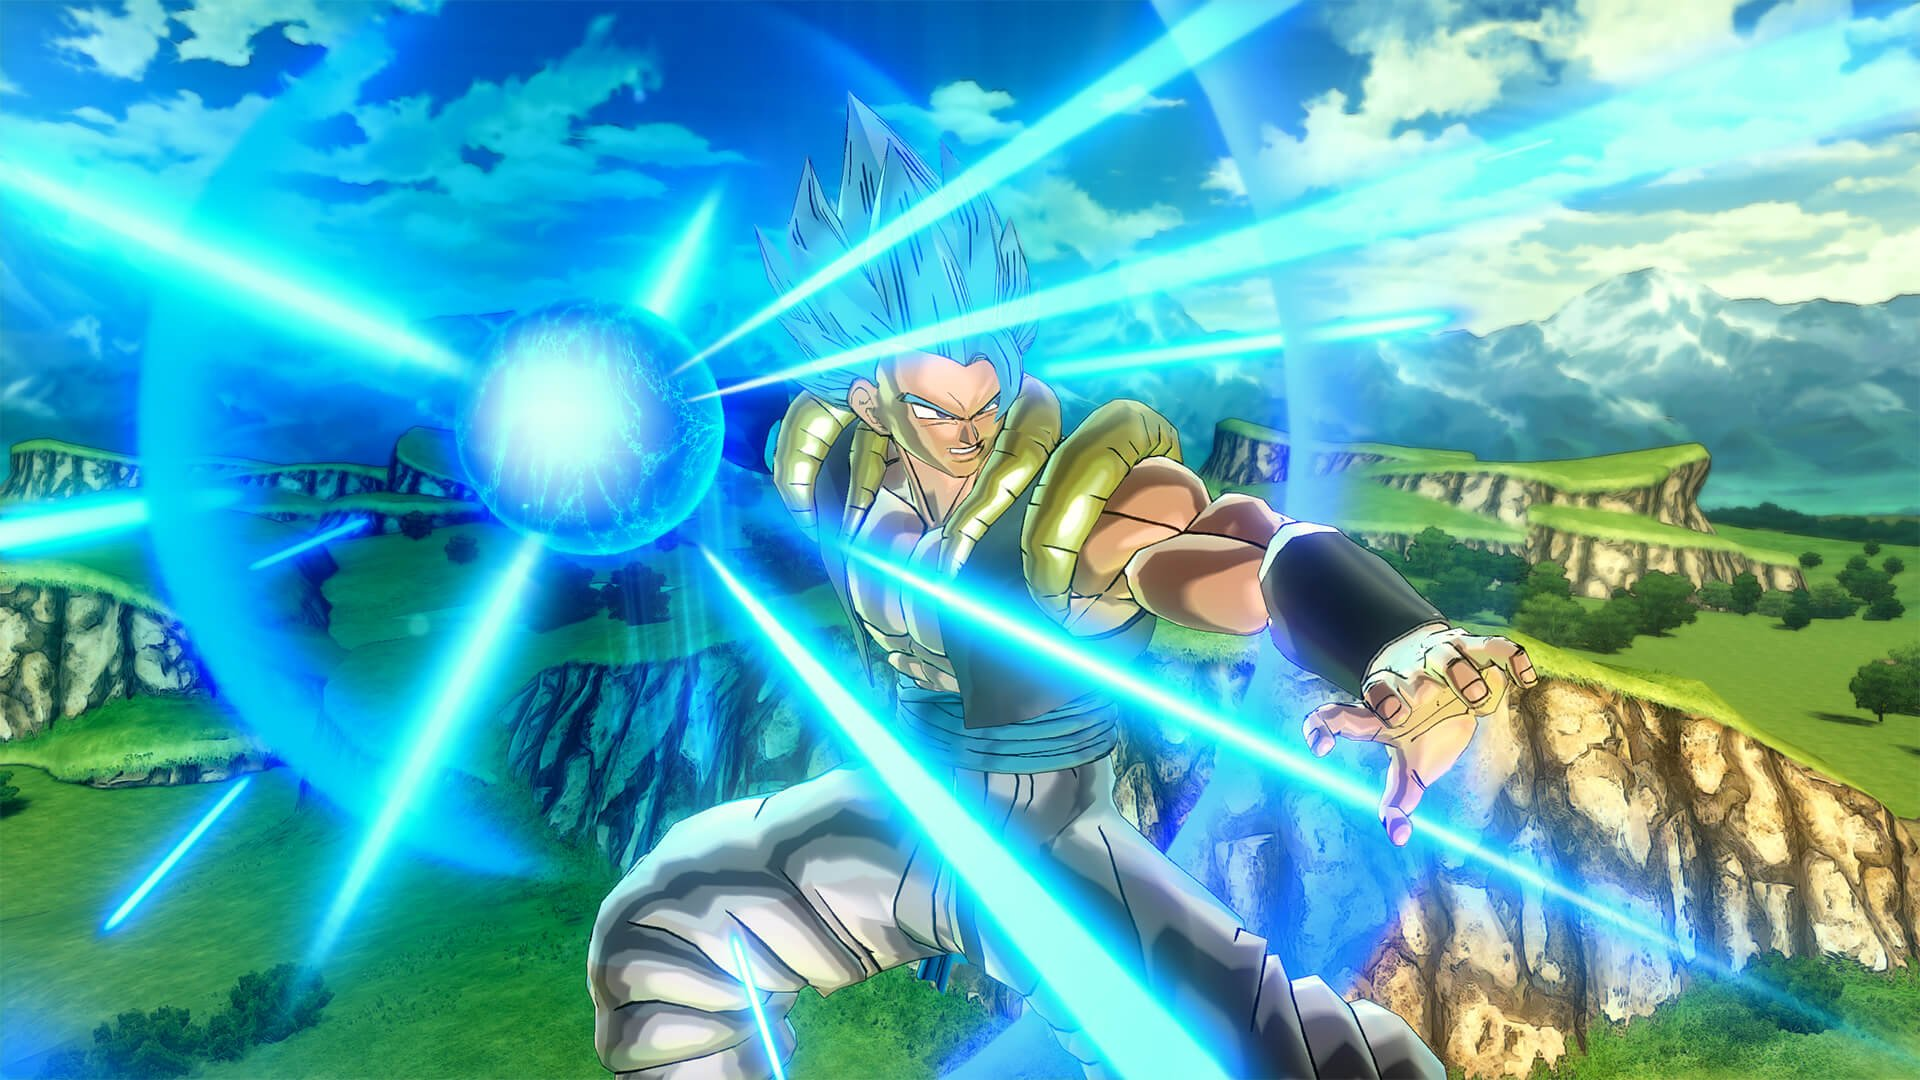 dragon ball z xenoverse 2 download for pc full version